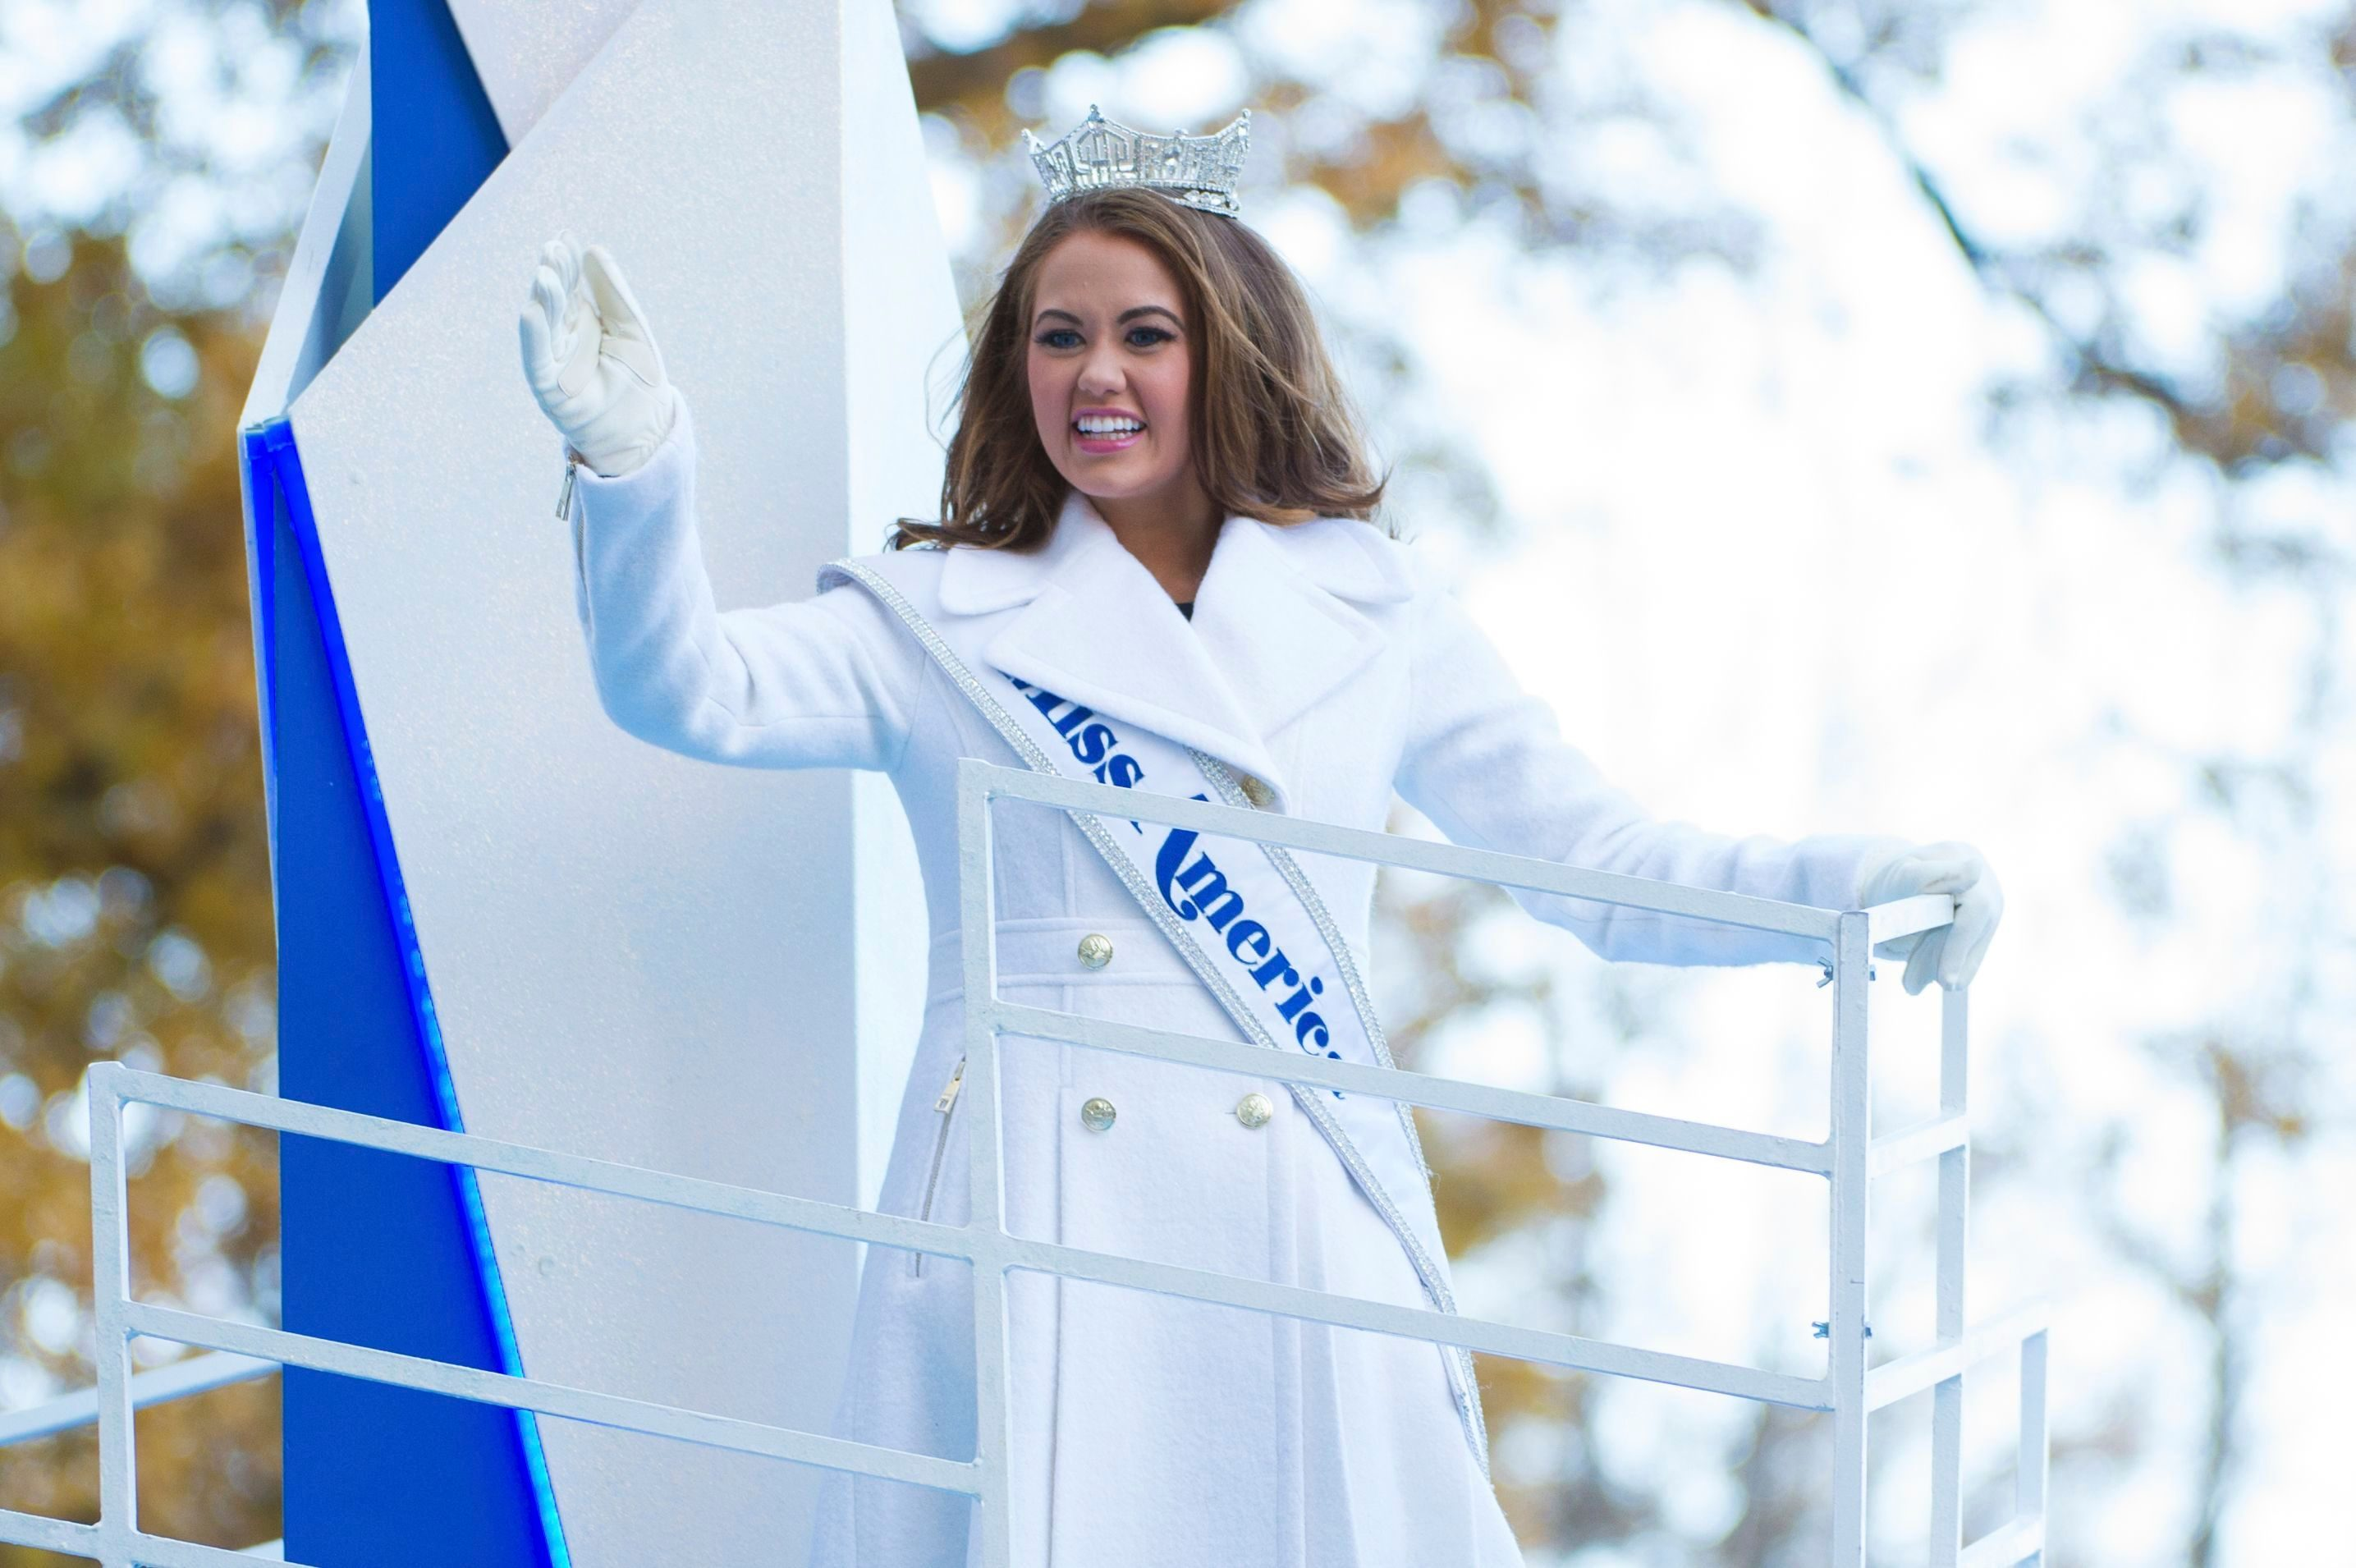 Mandatory Credit: Photo by Invision/AP/Shutterstock (9238261dx) Miss American 2018, Cara Mund, is seen at the 91st Macy's Thanksgiving Day Parade, in New York 2017 Macy's Thanksgiving Day Parade Performances, New York, USA - 23 Nov 2017